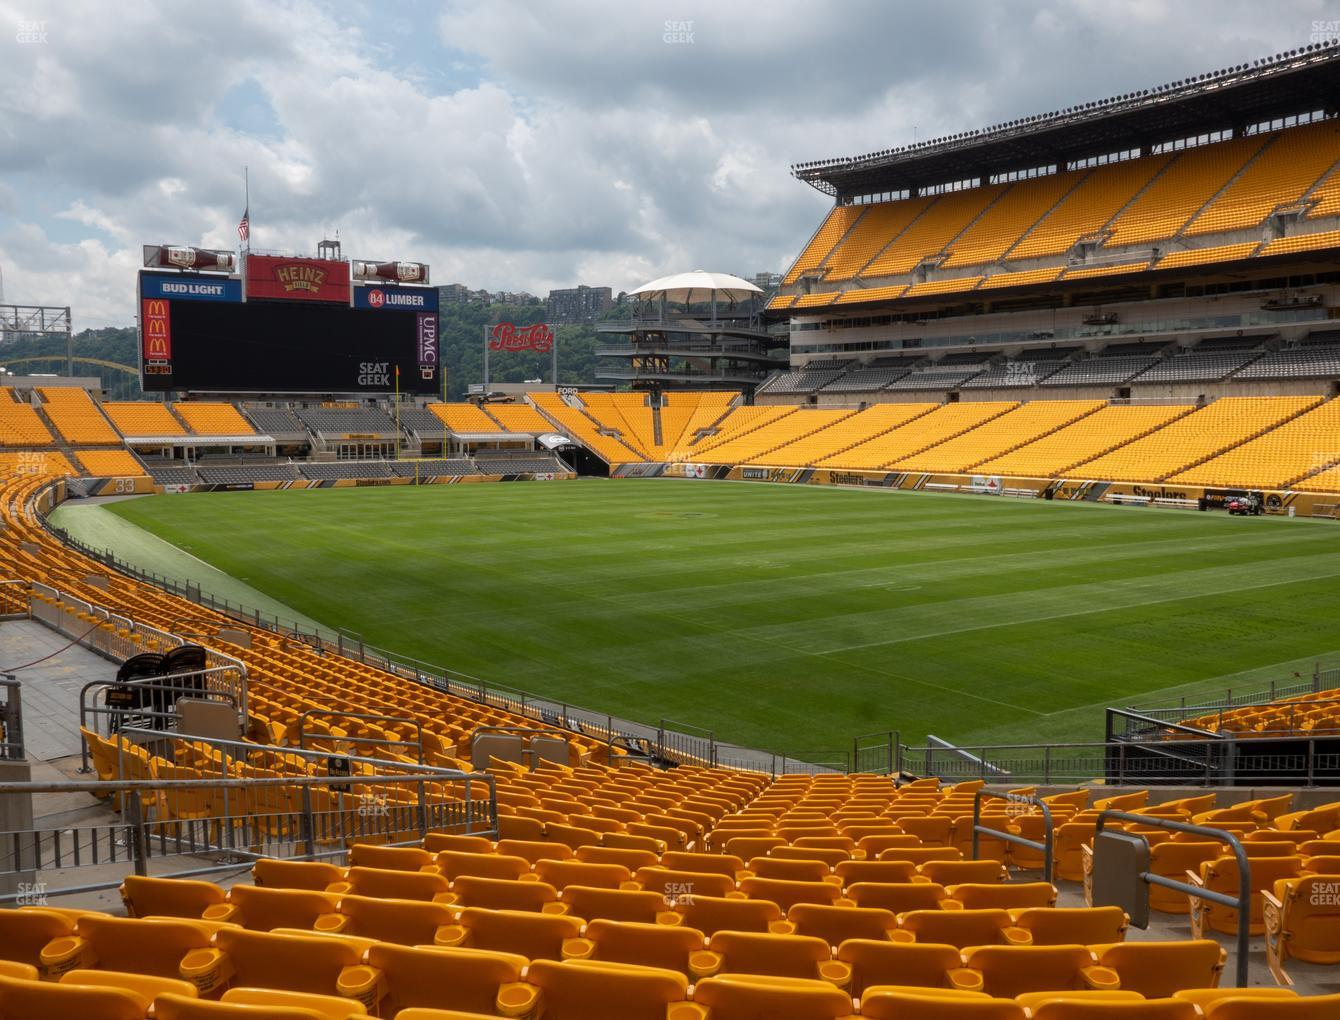 steelers stadium seating chart rows - Bamil